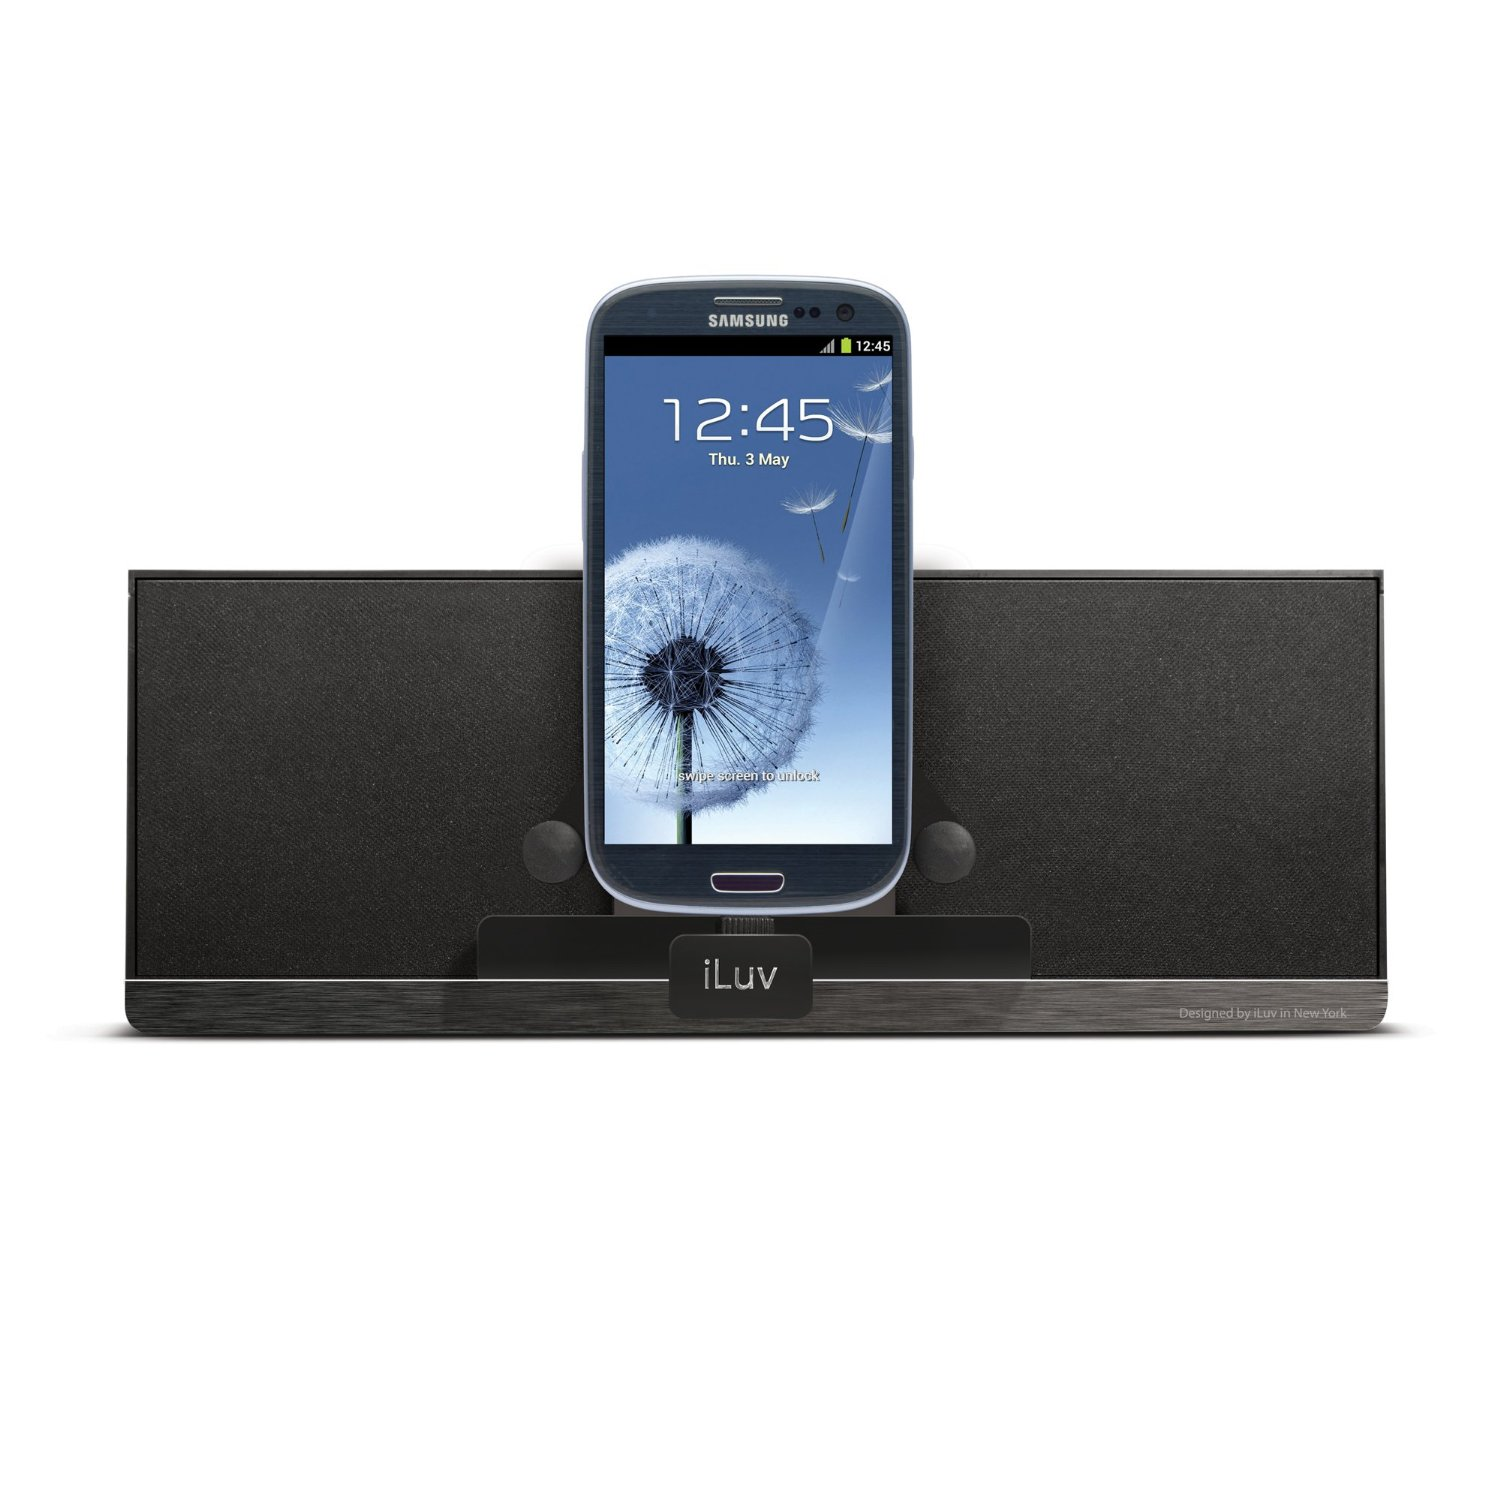 iluv ism378 wireless bluetooth speaker docking station for samsung android phone ebay. Black Bedroom Furniture Sets. Home Design Ideas